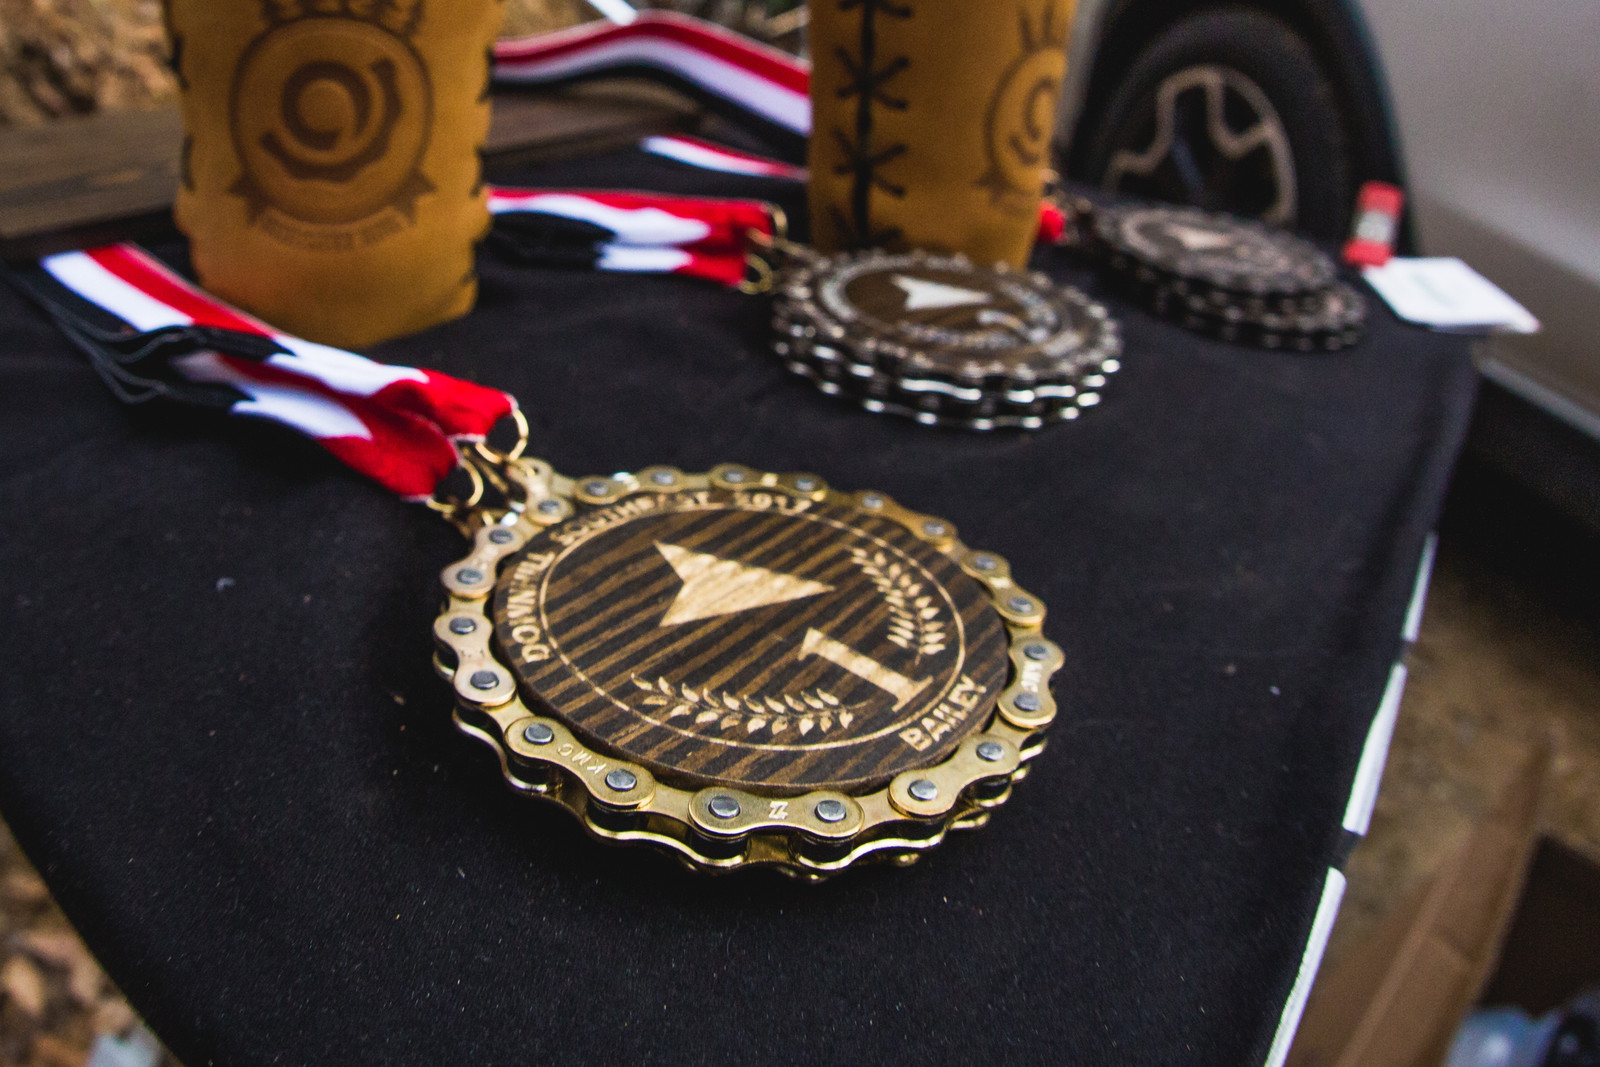 Carolina Pro Flooring delivered in a big way on the medals! They made and donated them for the all of the Downhill Southeast events, as well as the Pro GRT at Windrock.